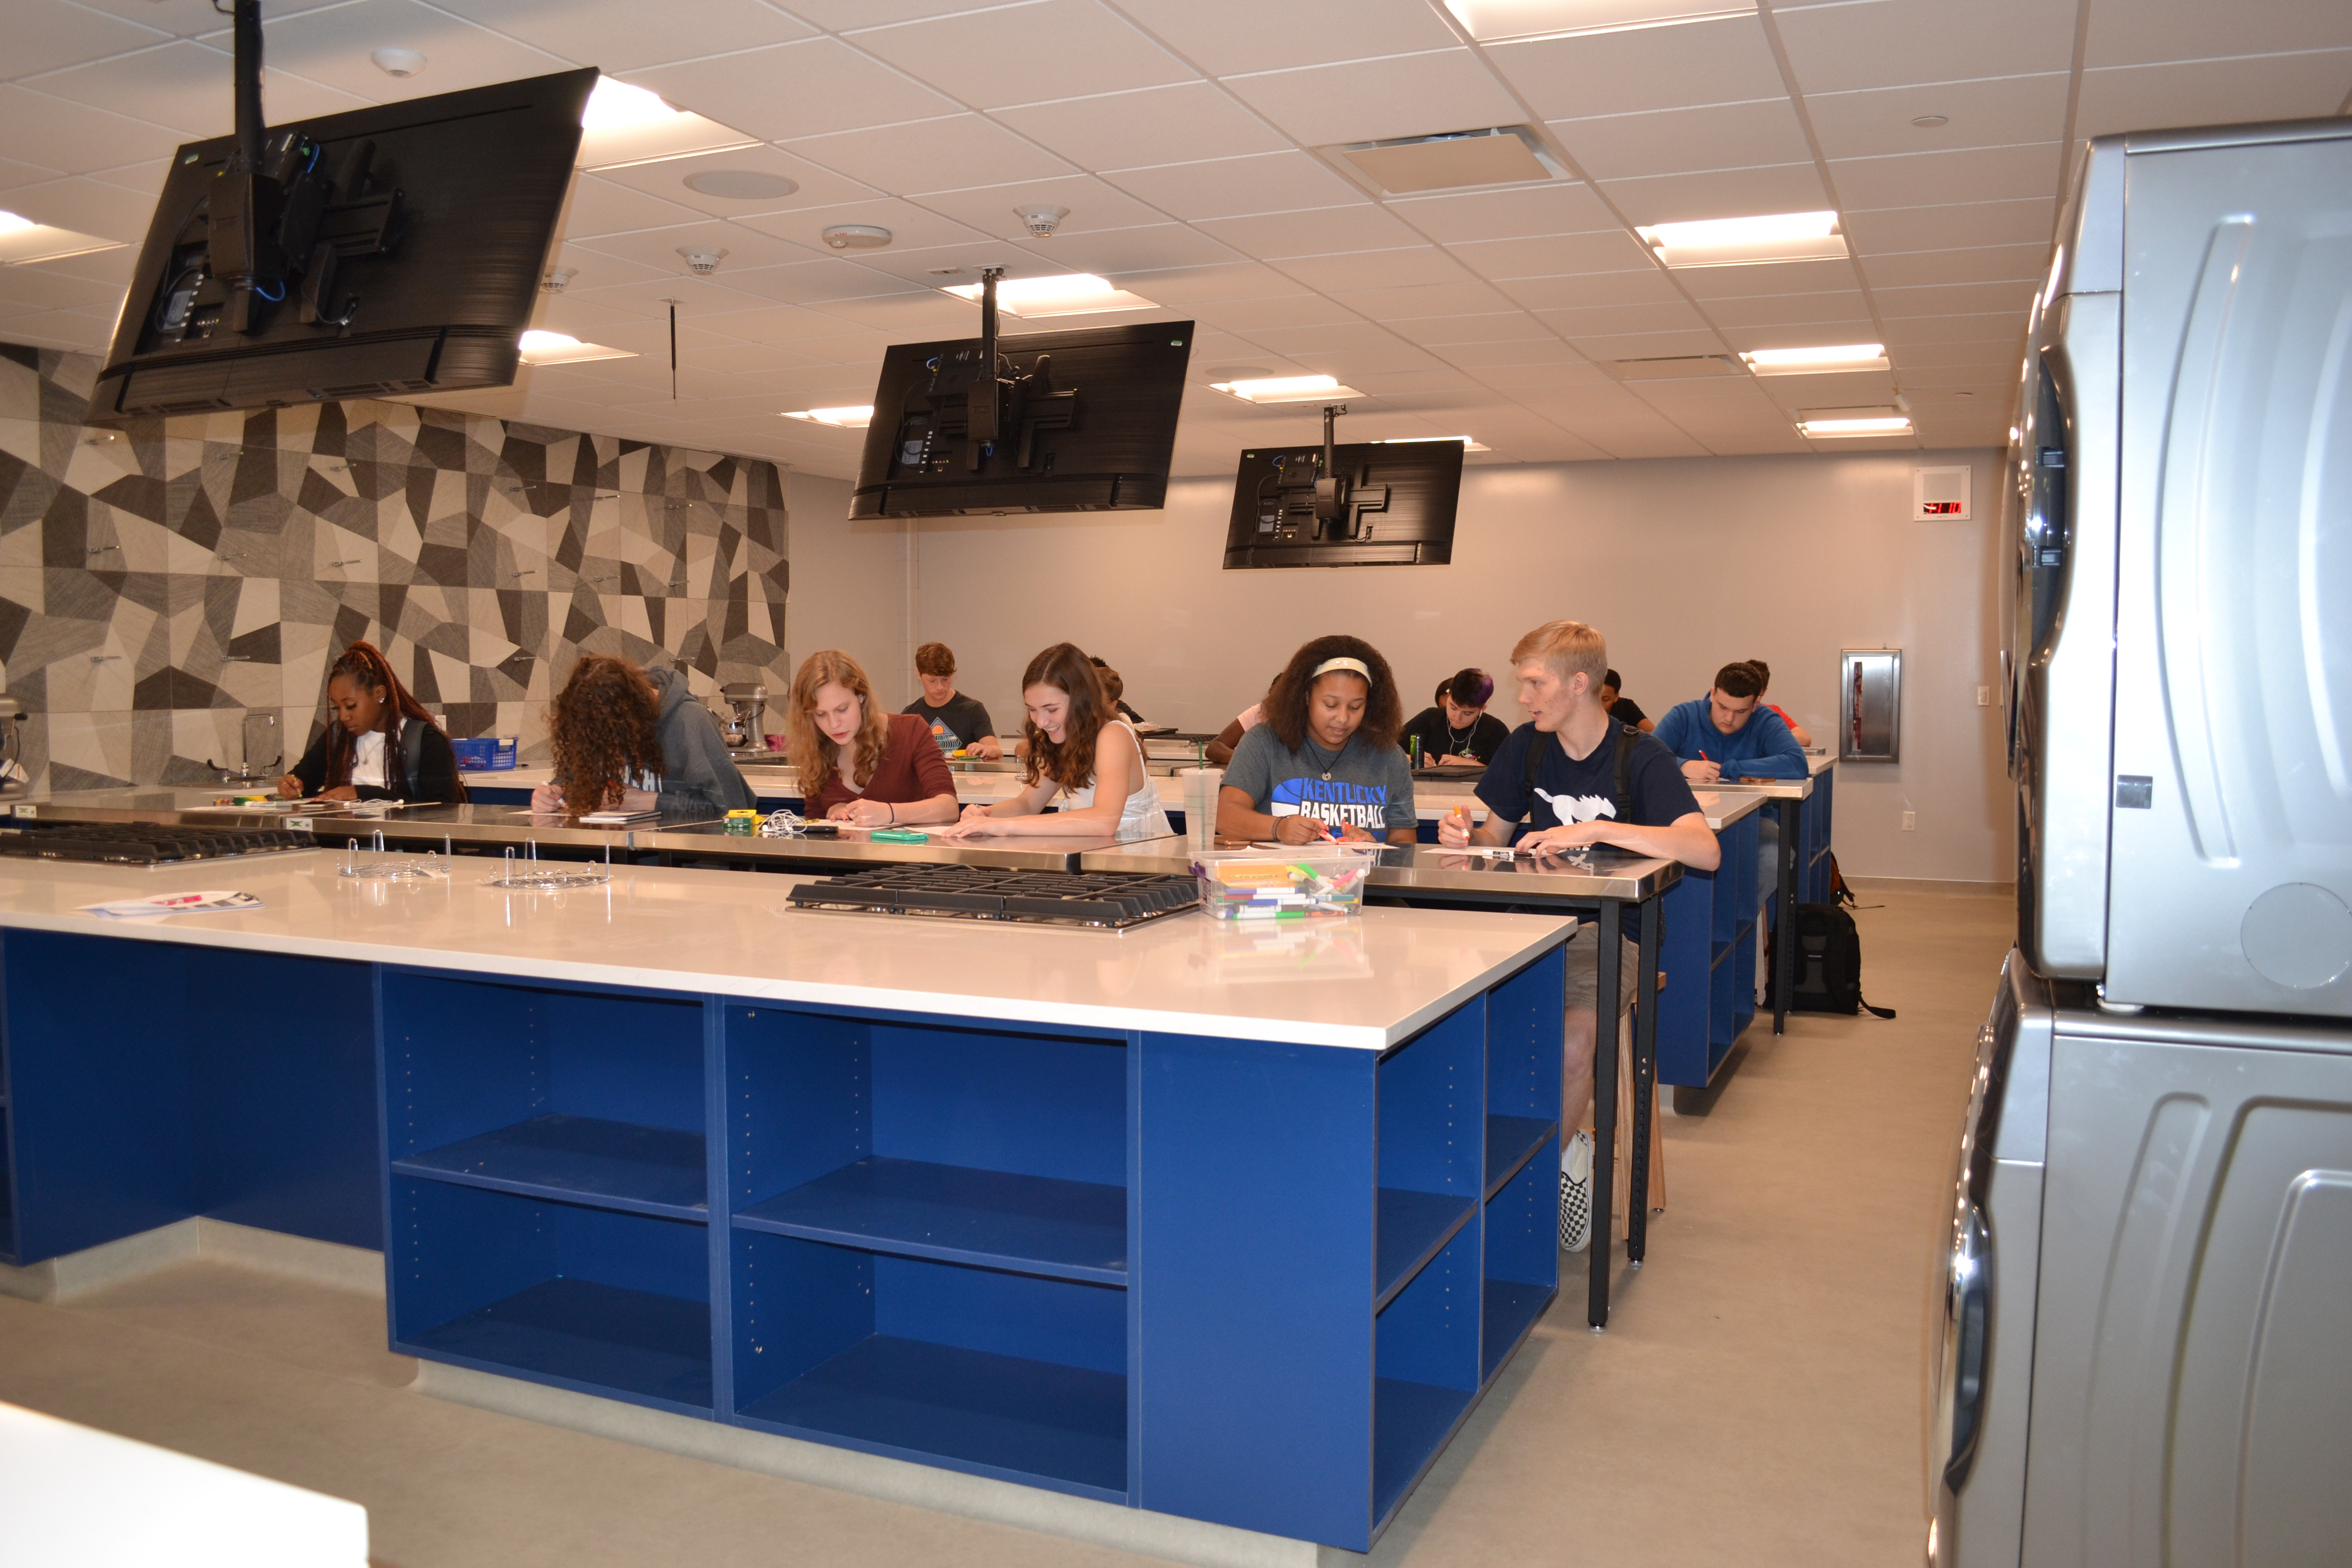 The new culinary lab at Downers Grove South. Each lab contains six large work stations that look like kitchen islands that faces a teacher demonstration station at the head of the class.